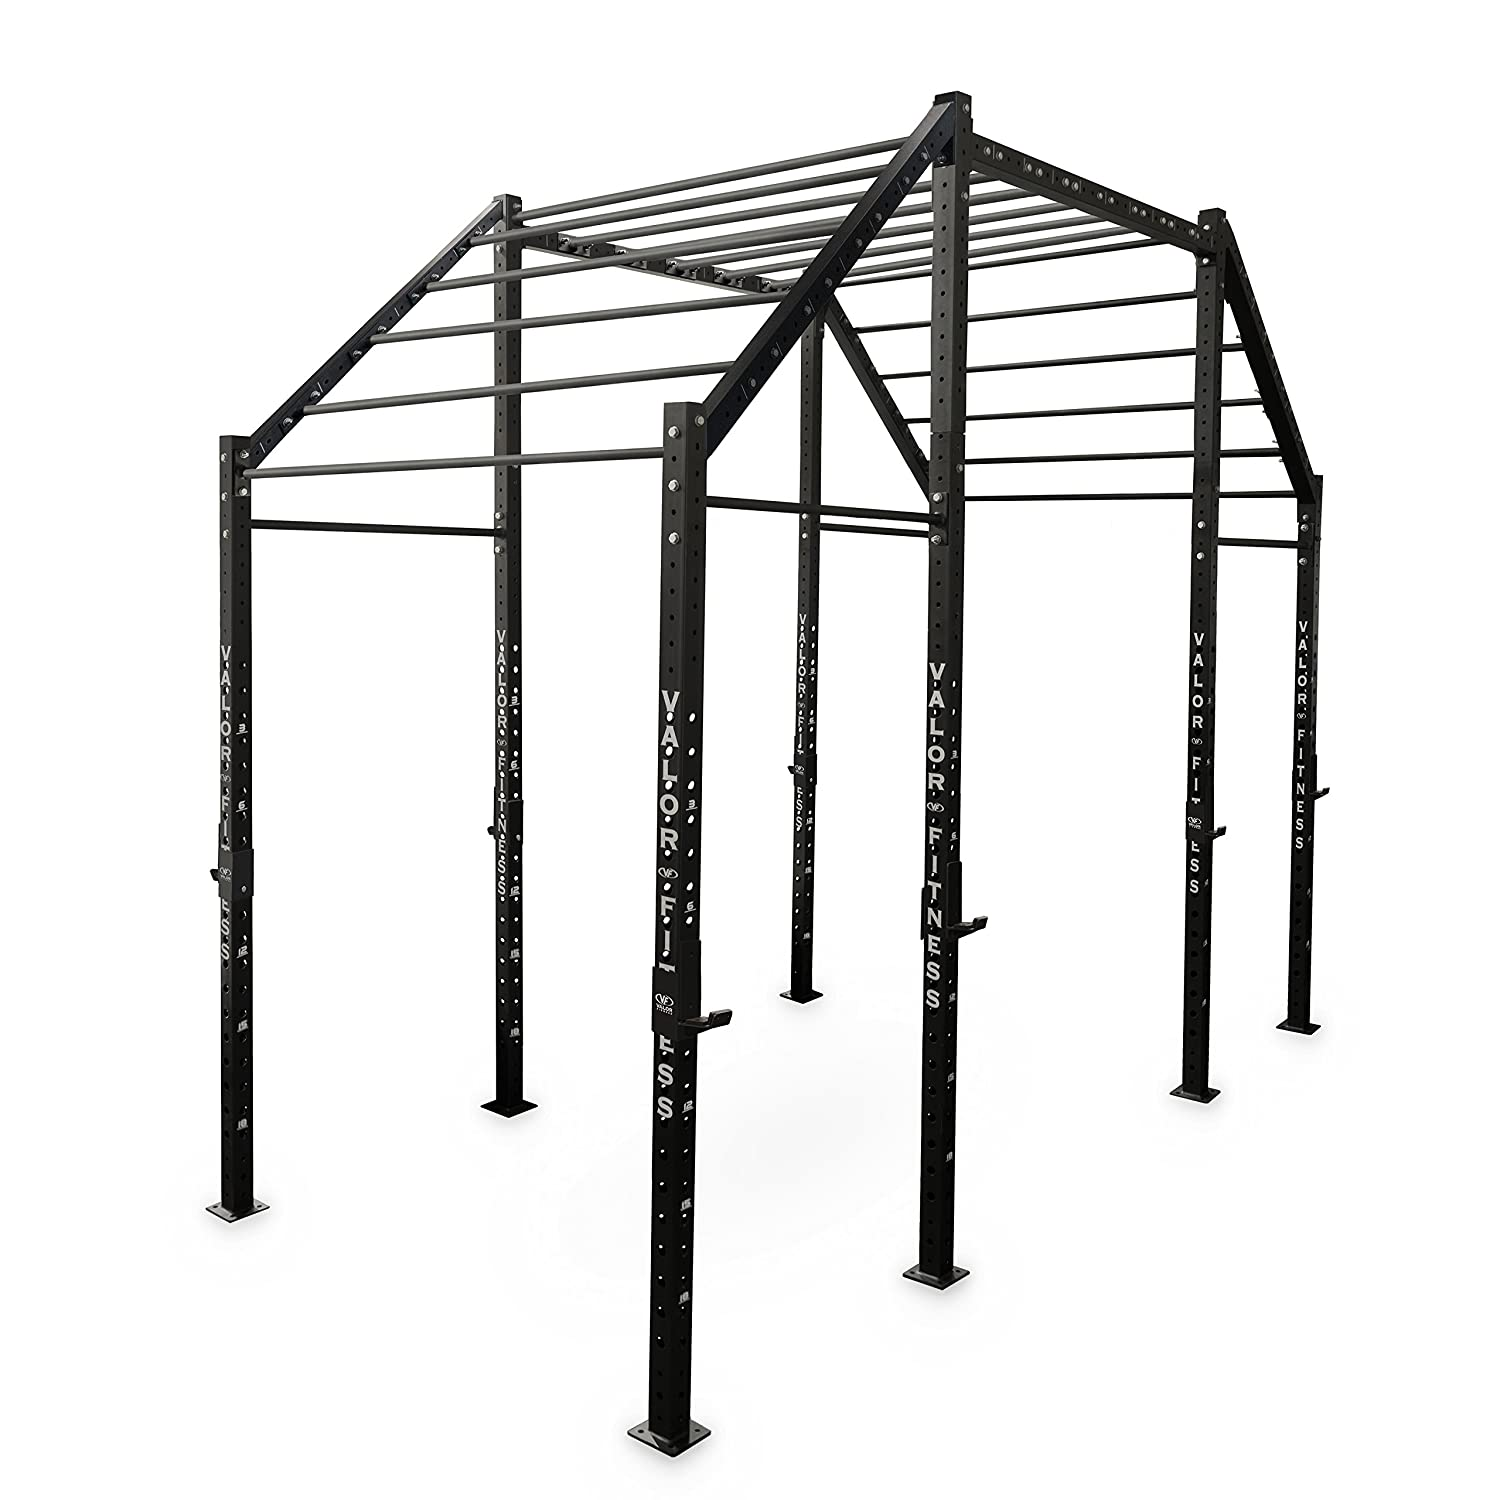 Rogue monster lite monkey bar rig review october